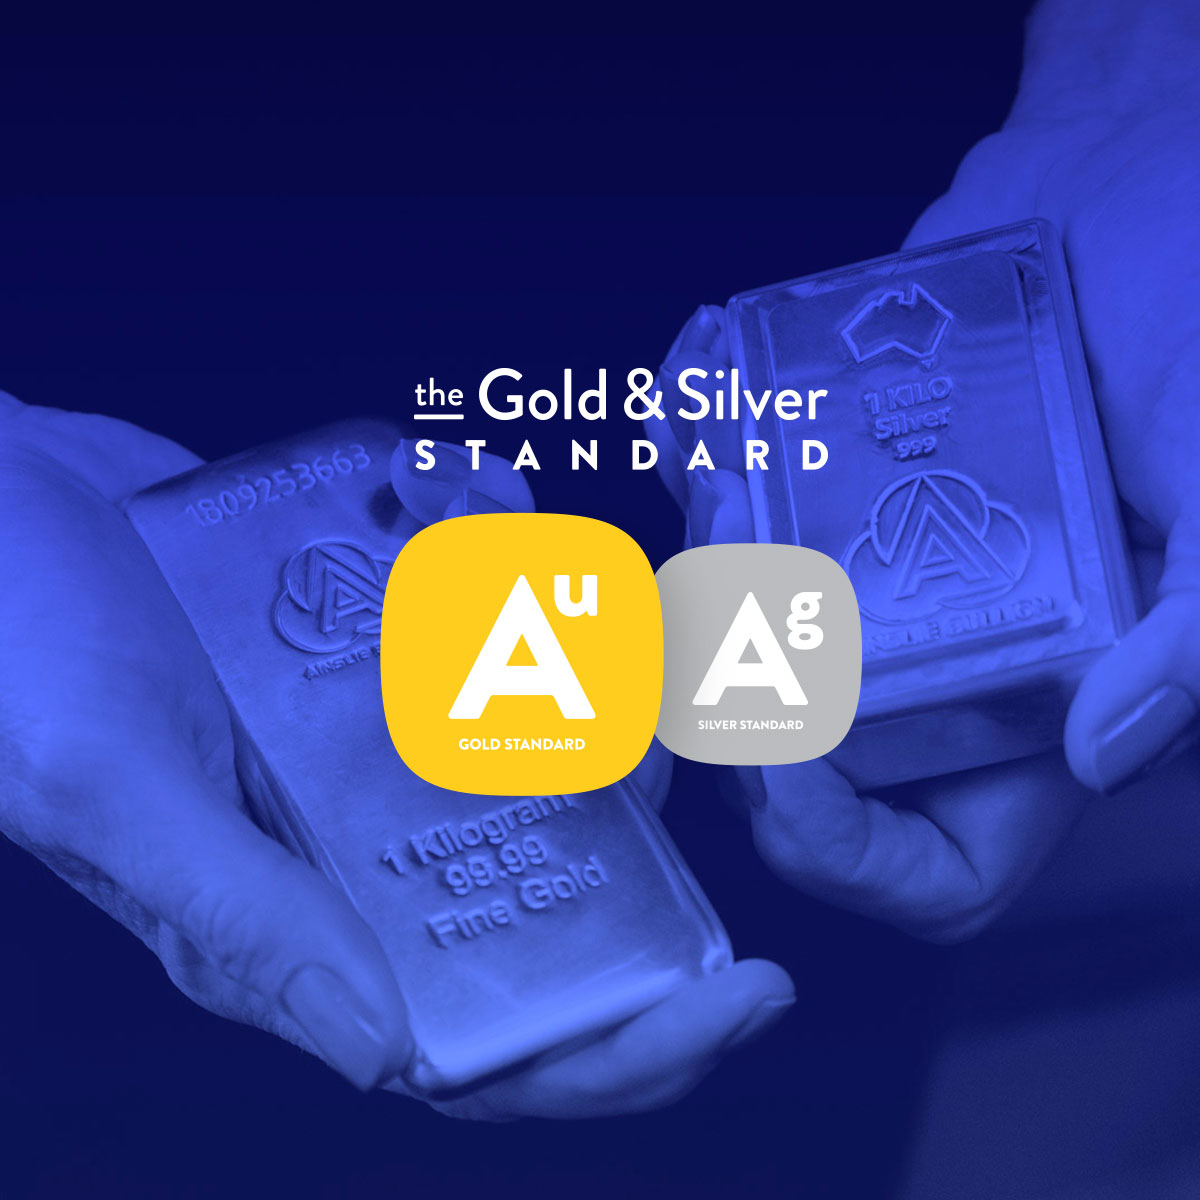 Bamboo Launches Gold & Silver Standard tokens